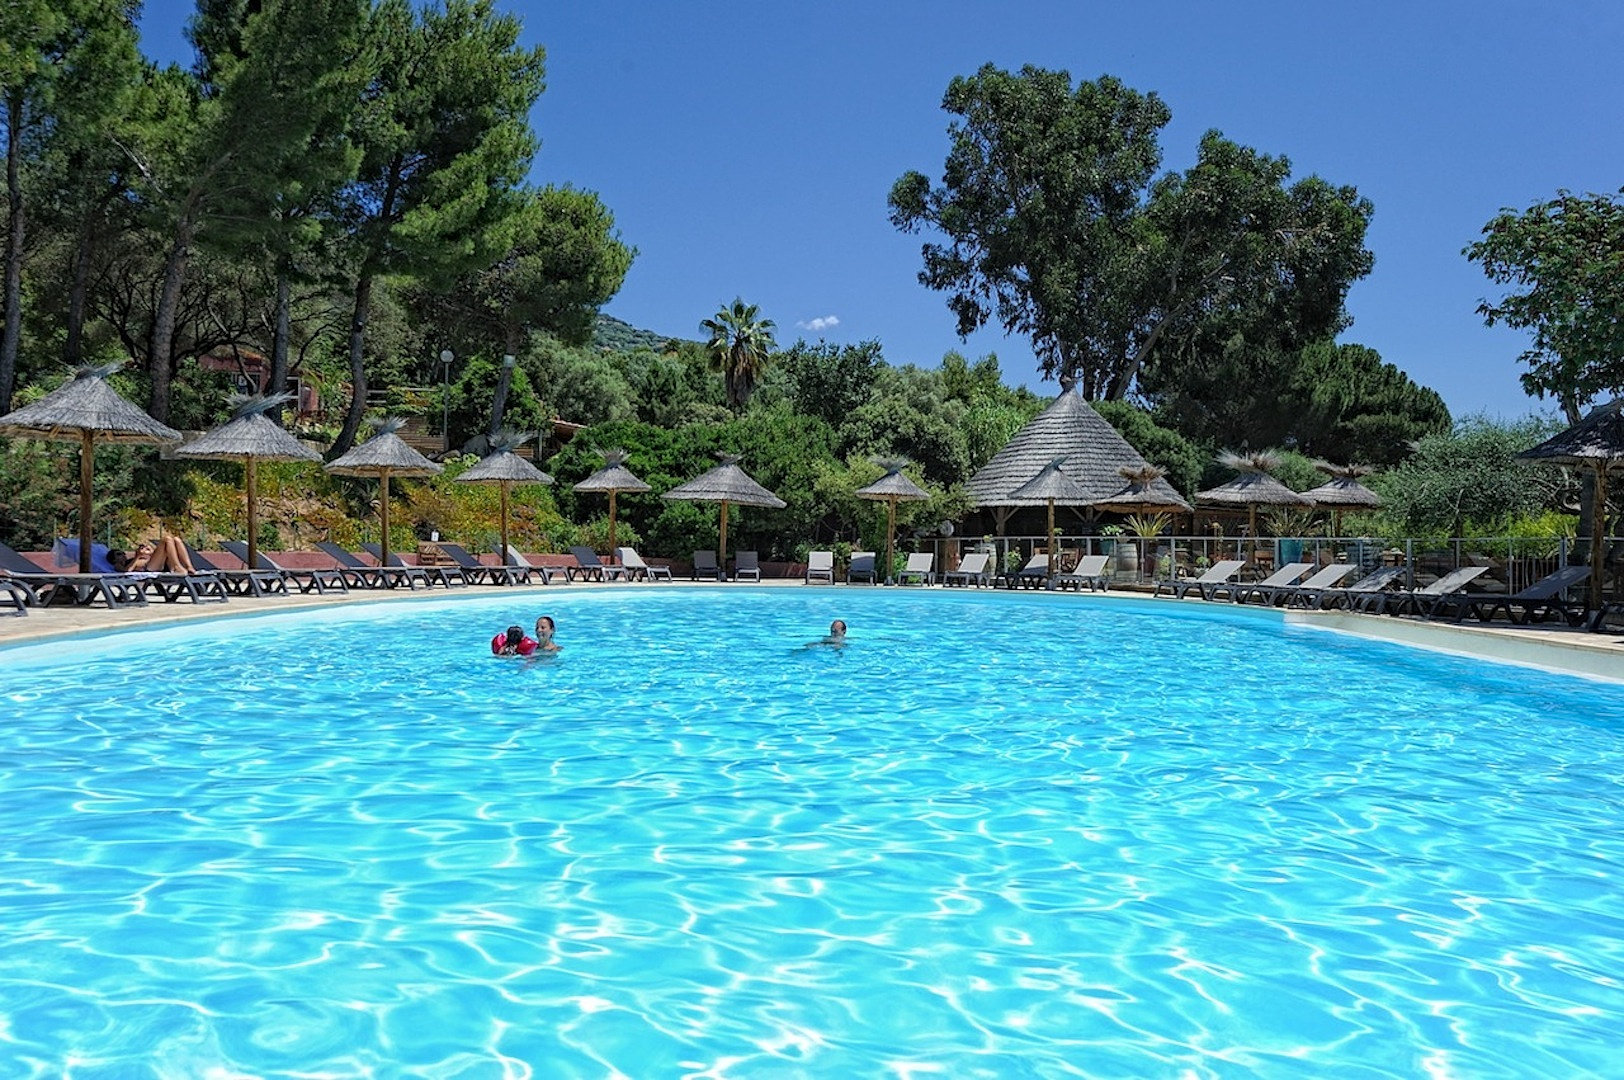 Camping corse for Camping corse du sud avec piscine